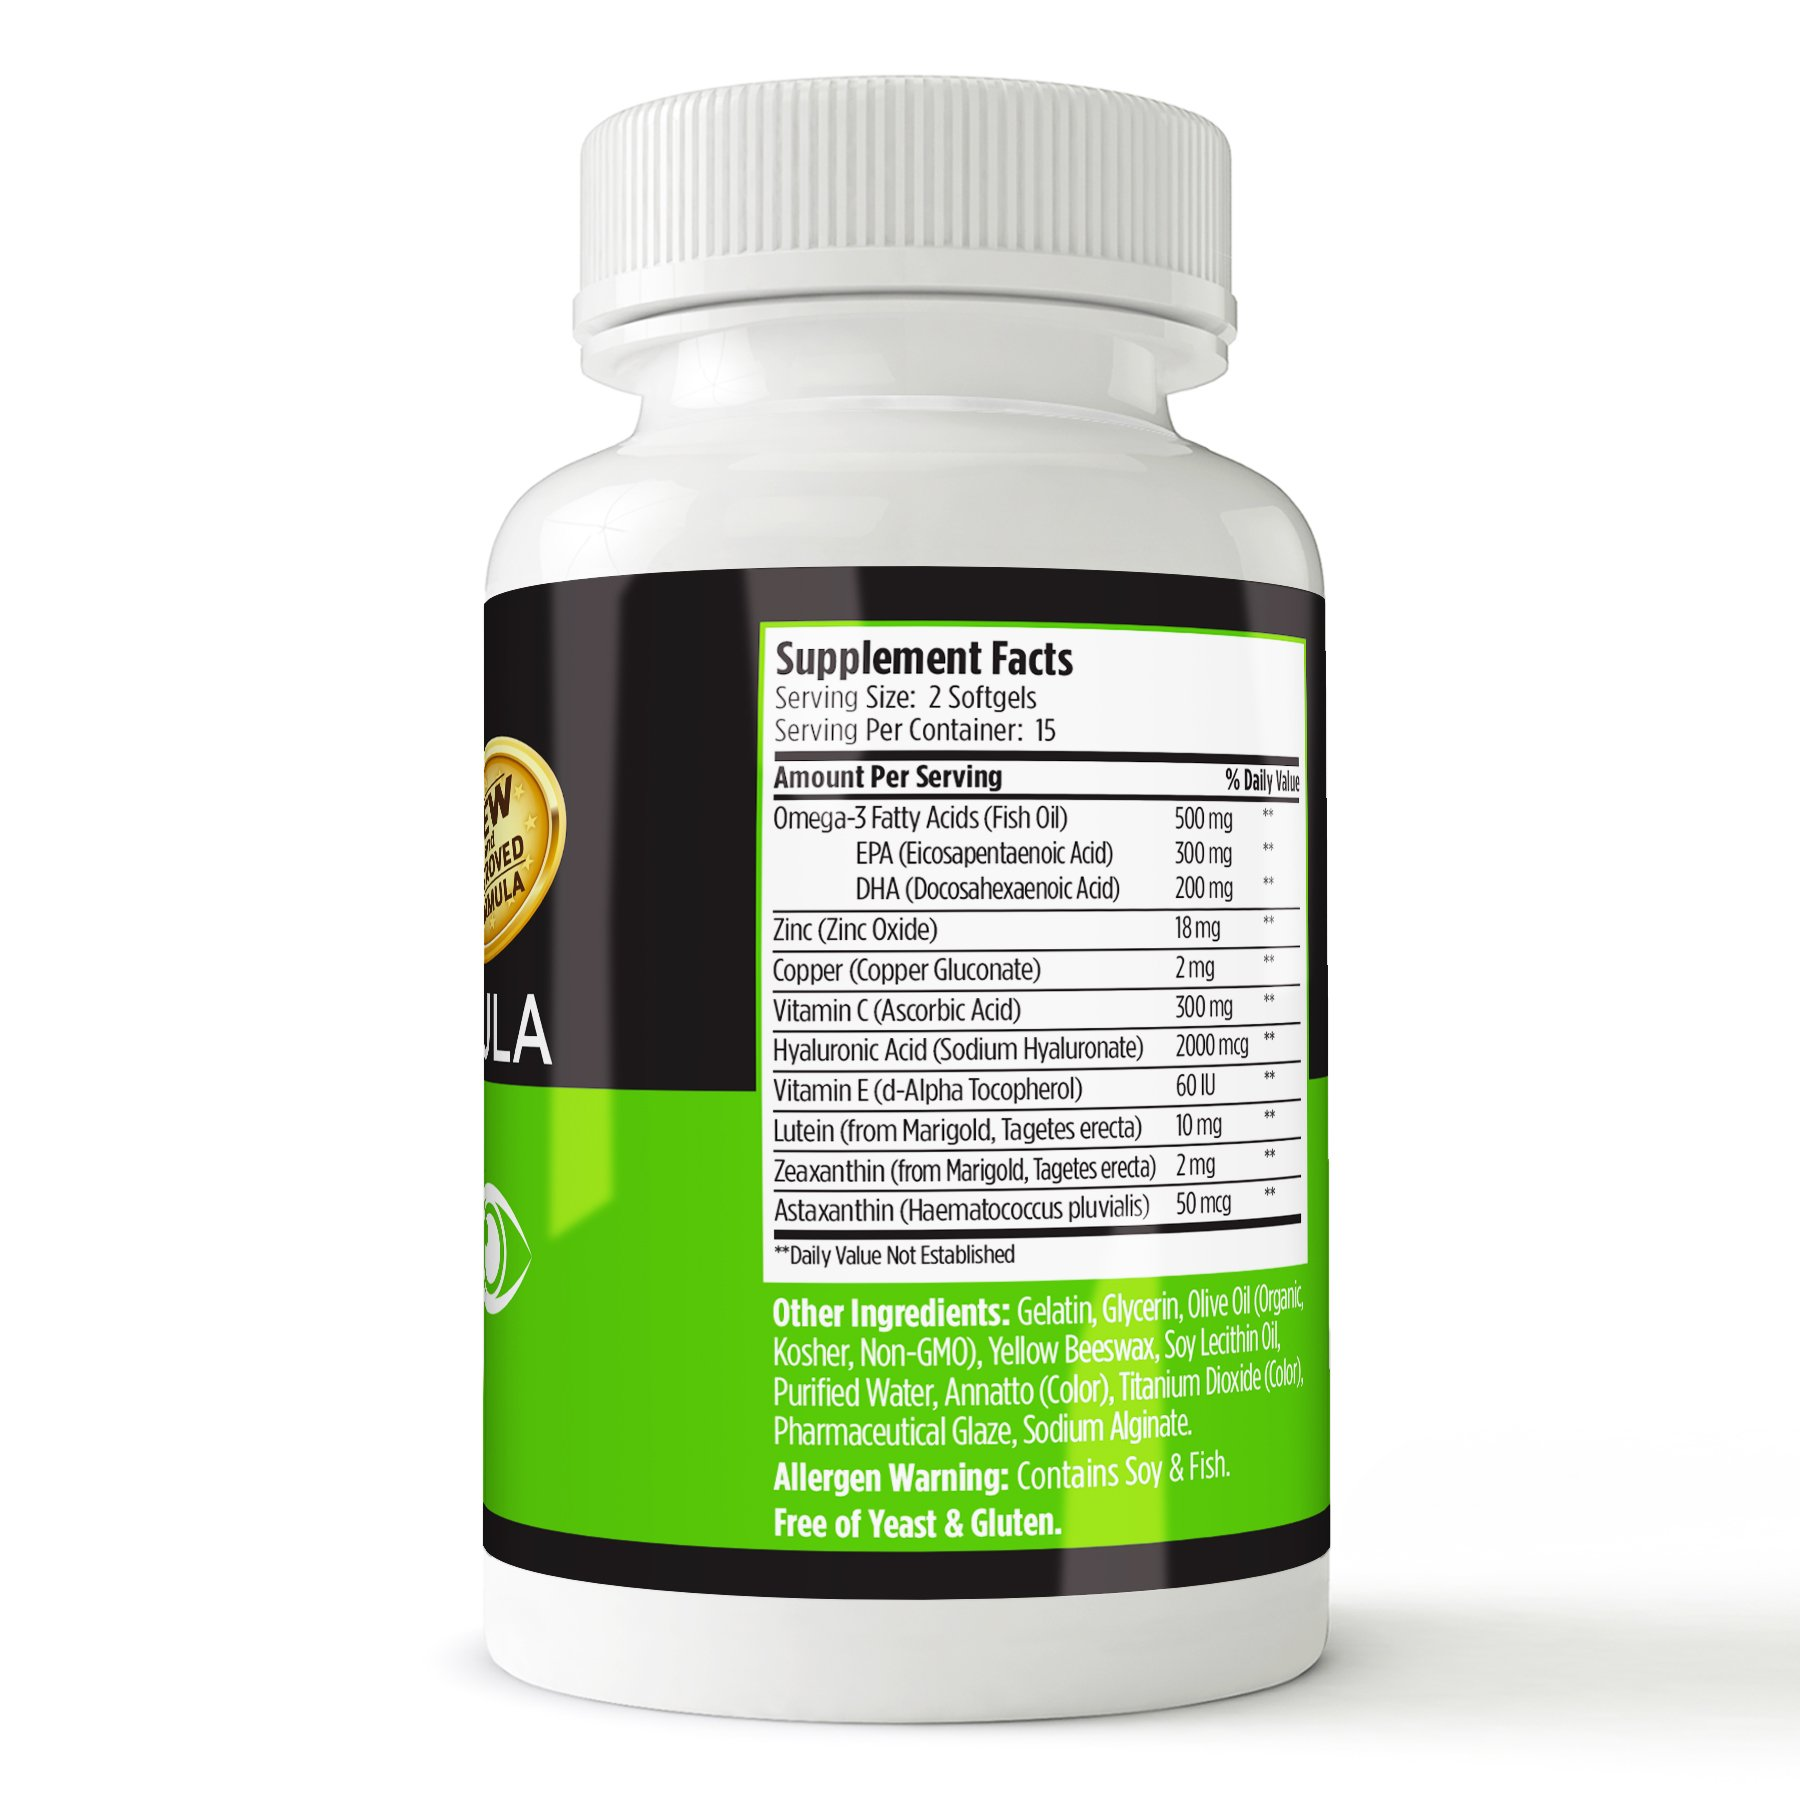 GMPVitas Enteric Coated Eye Formula- High Potency Omega-3 Supplement with Lutein, Astaxanthin Hyaluronic Acid, Vitamin C and E (3) by GMP Vitas (Image #4)